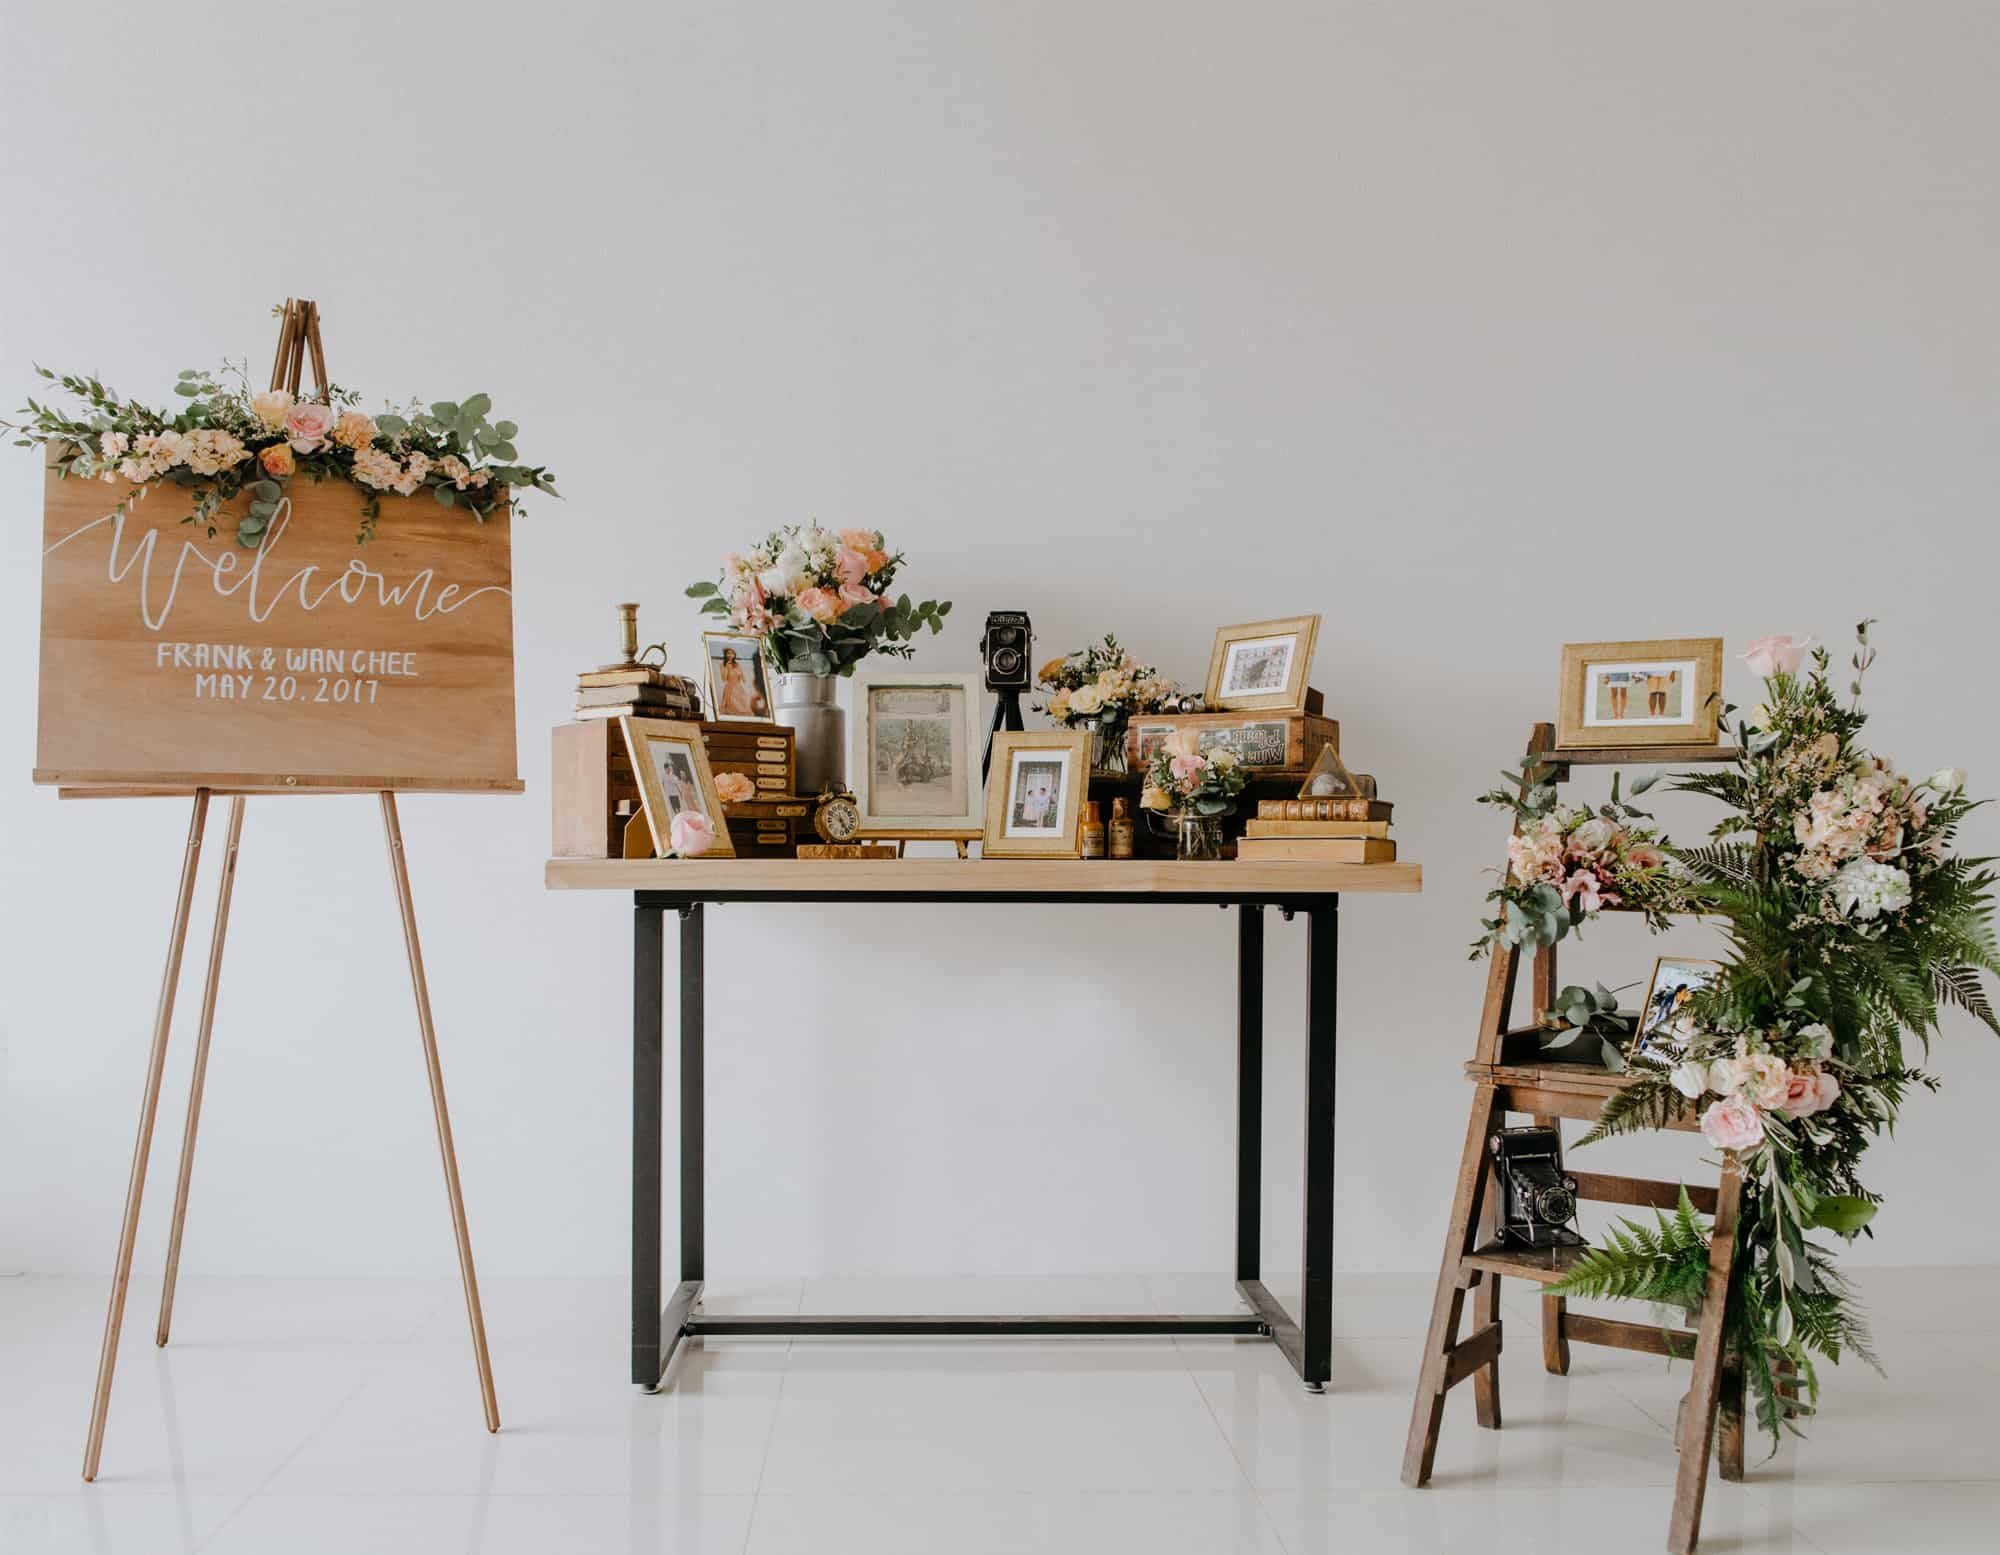 Rustic Wedding Decorations Package Lights Wedding Reception Decoration Singapore Rustic Wedding Decor Wedding Reception Table Decorations Wedding Decorations